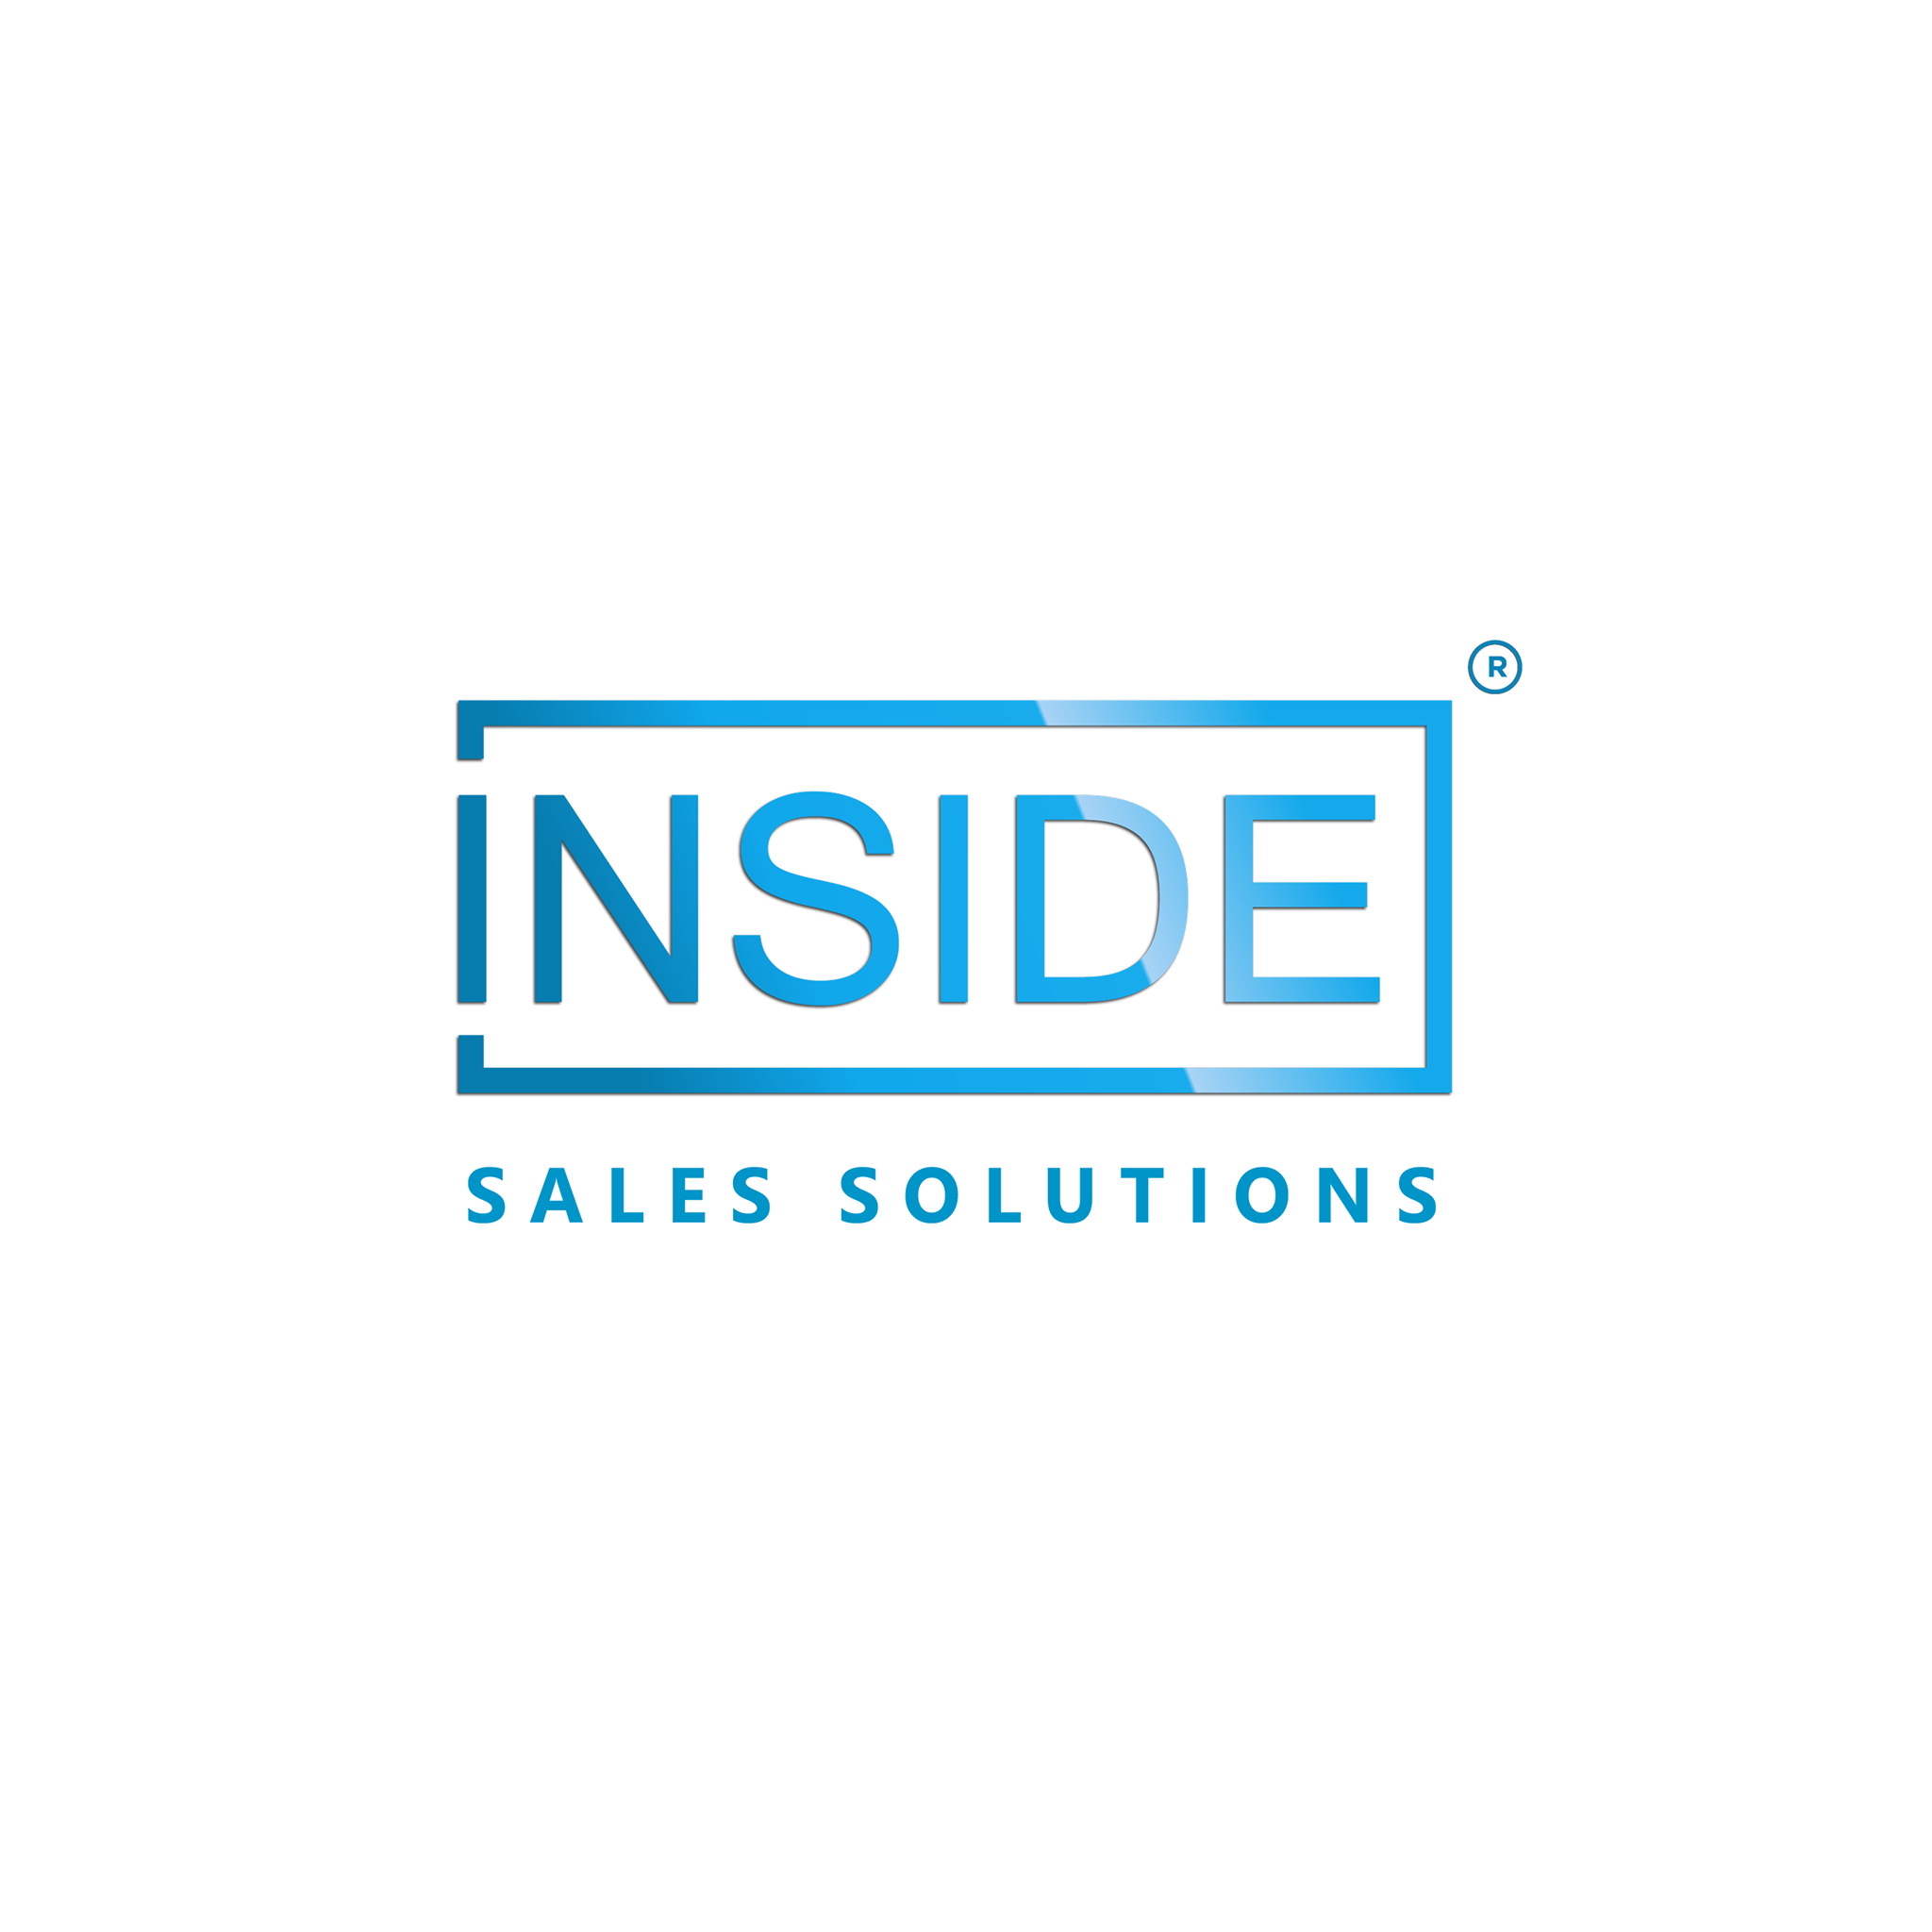 Inside Sales Solutions Other Edge District St Petersburg